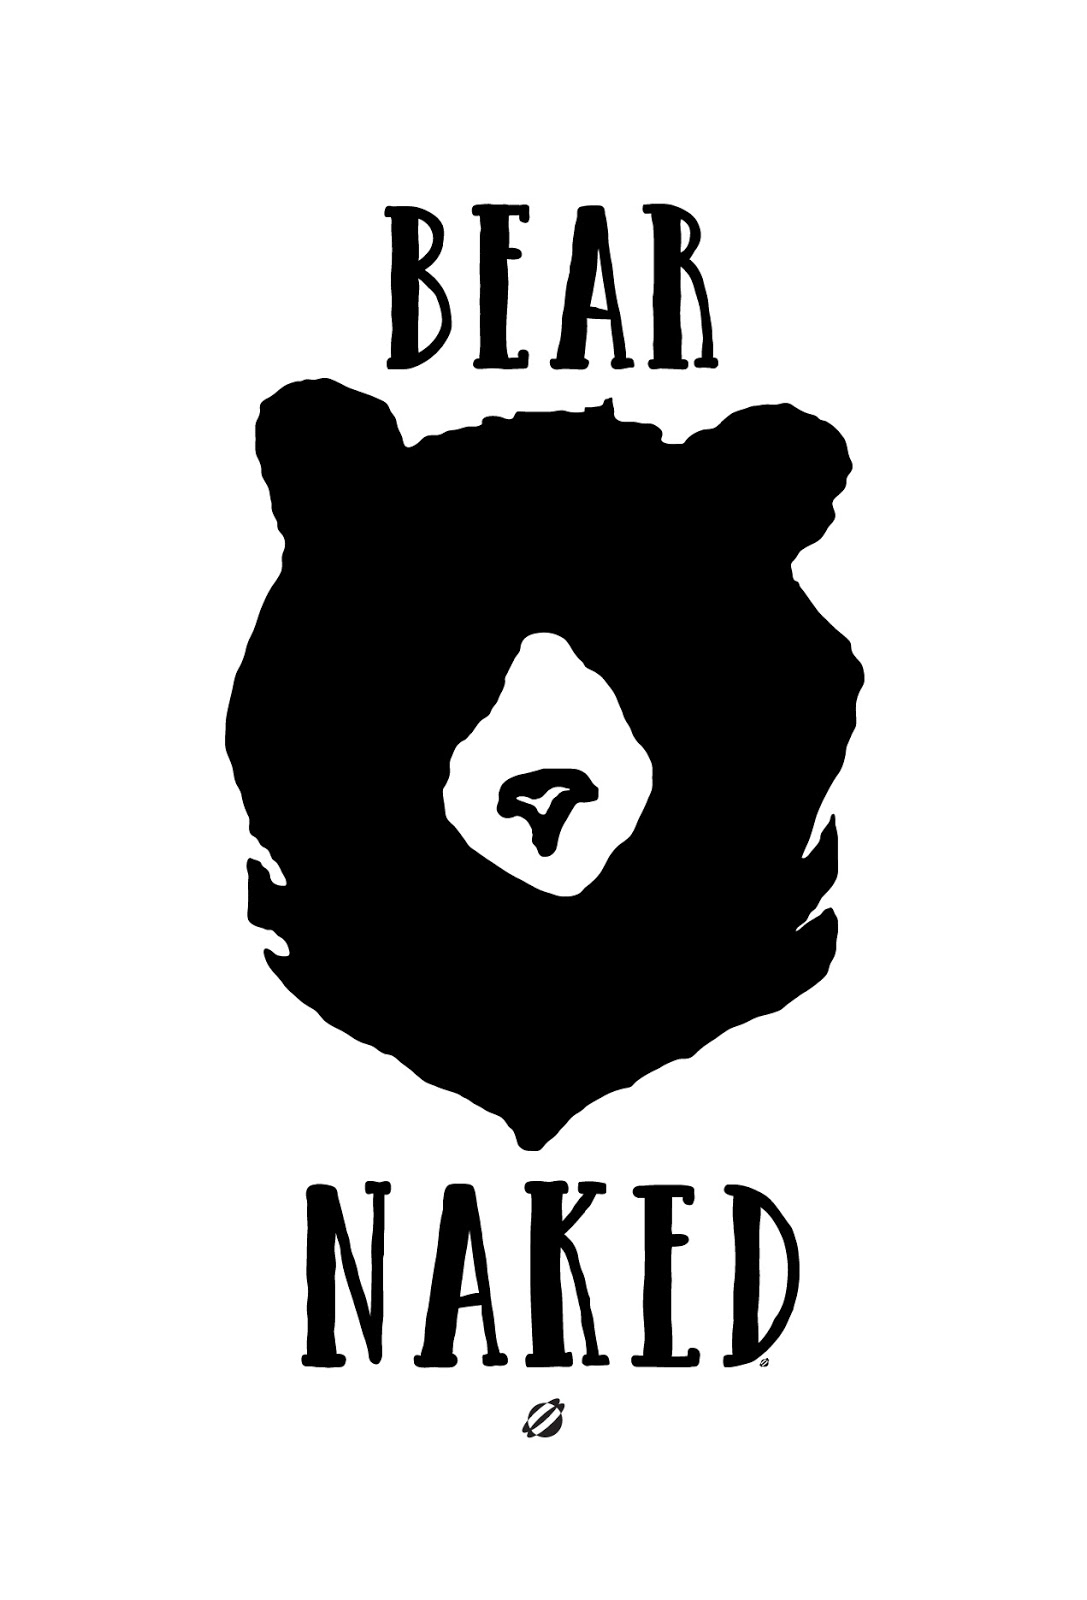 LostBumblebee ©2015 BEAR NAKED Free Printable Personal Use Only.